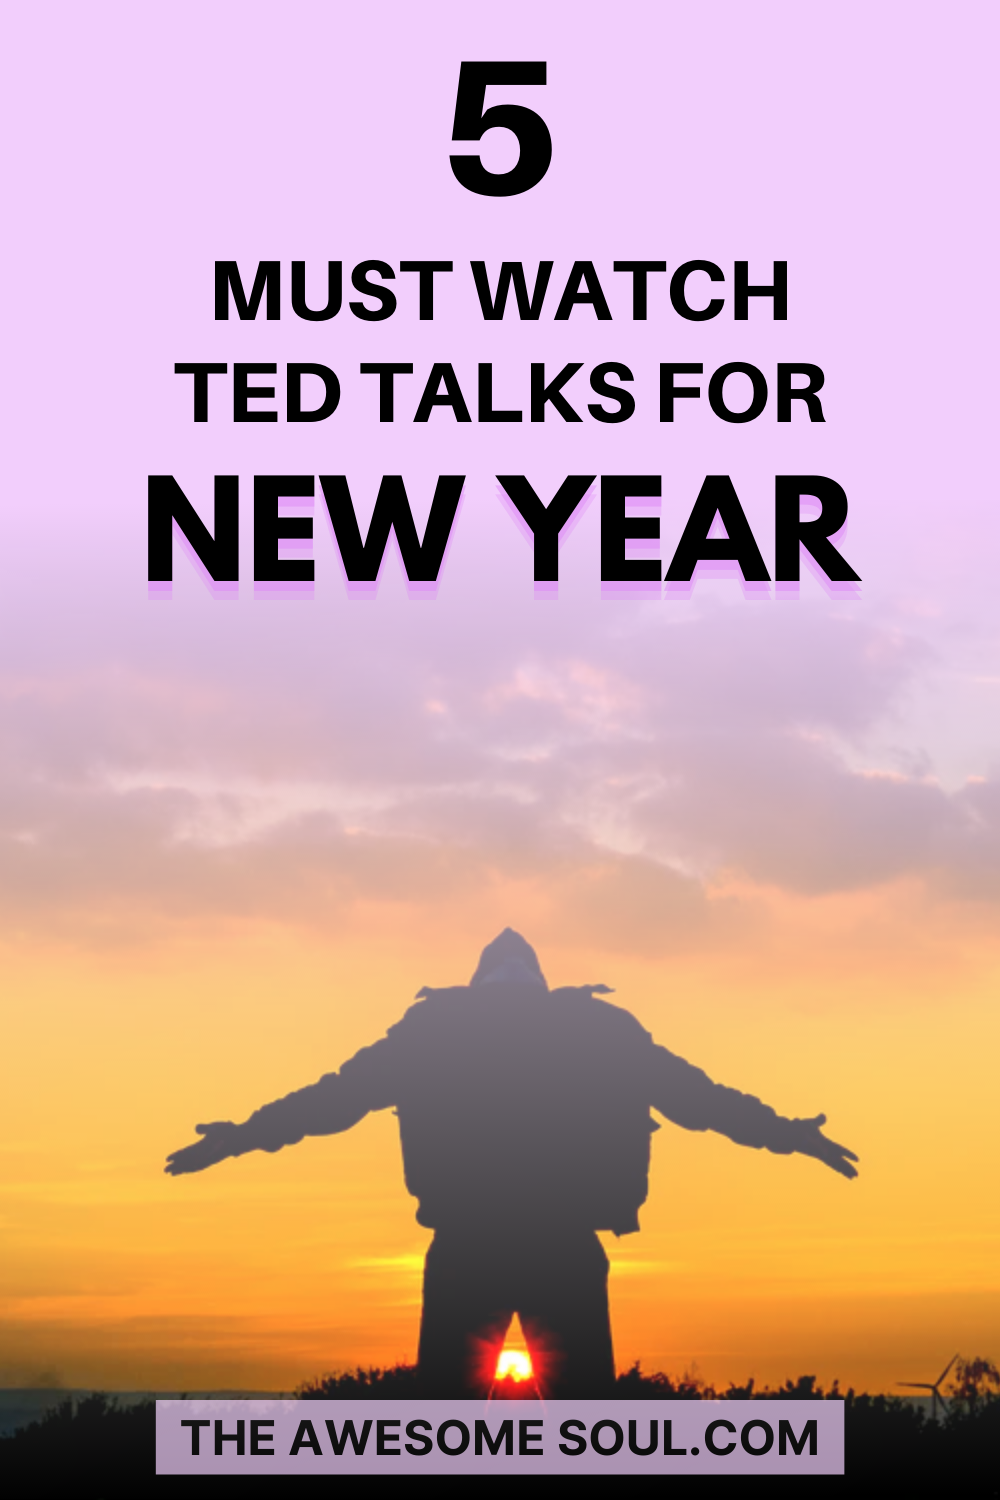 5 TED Talks For New Year - PIN